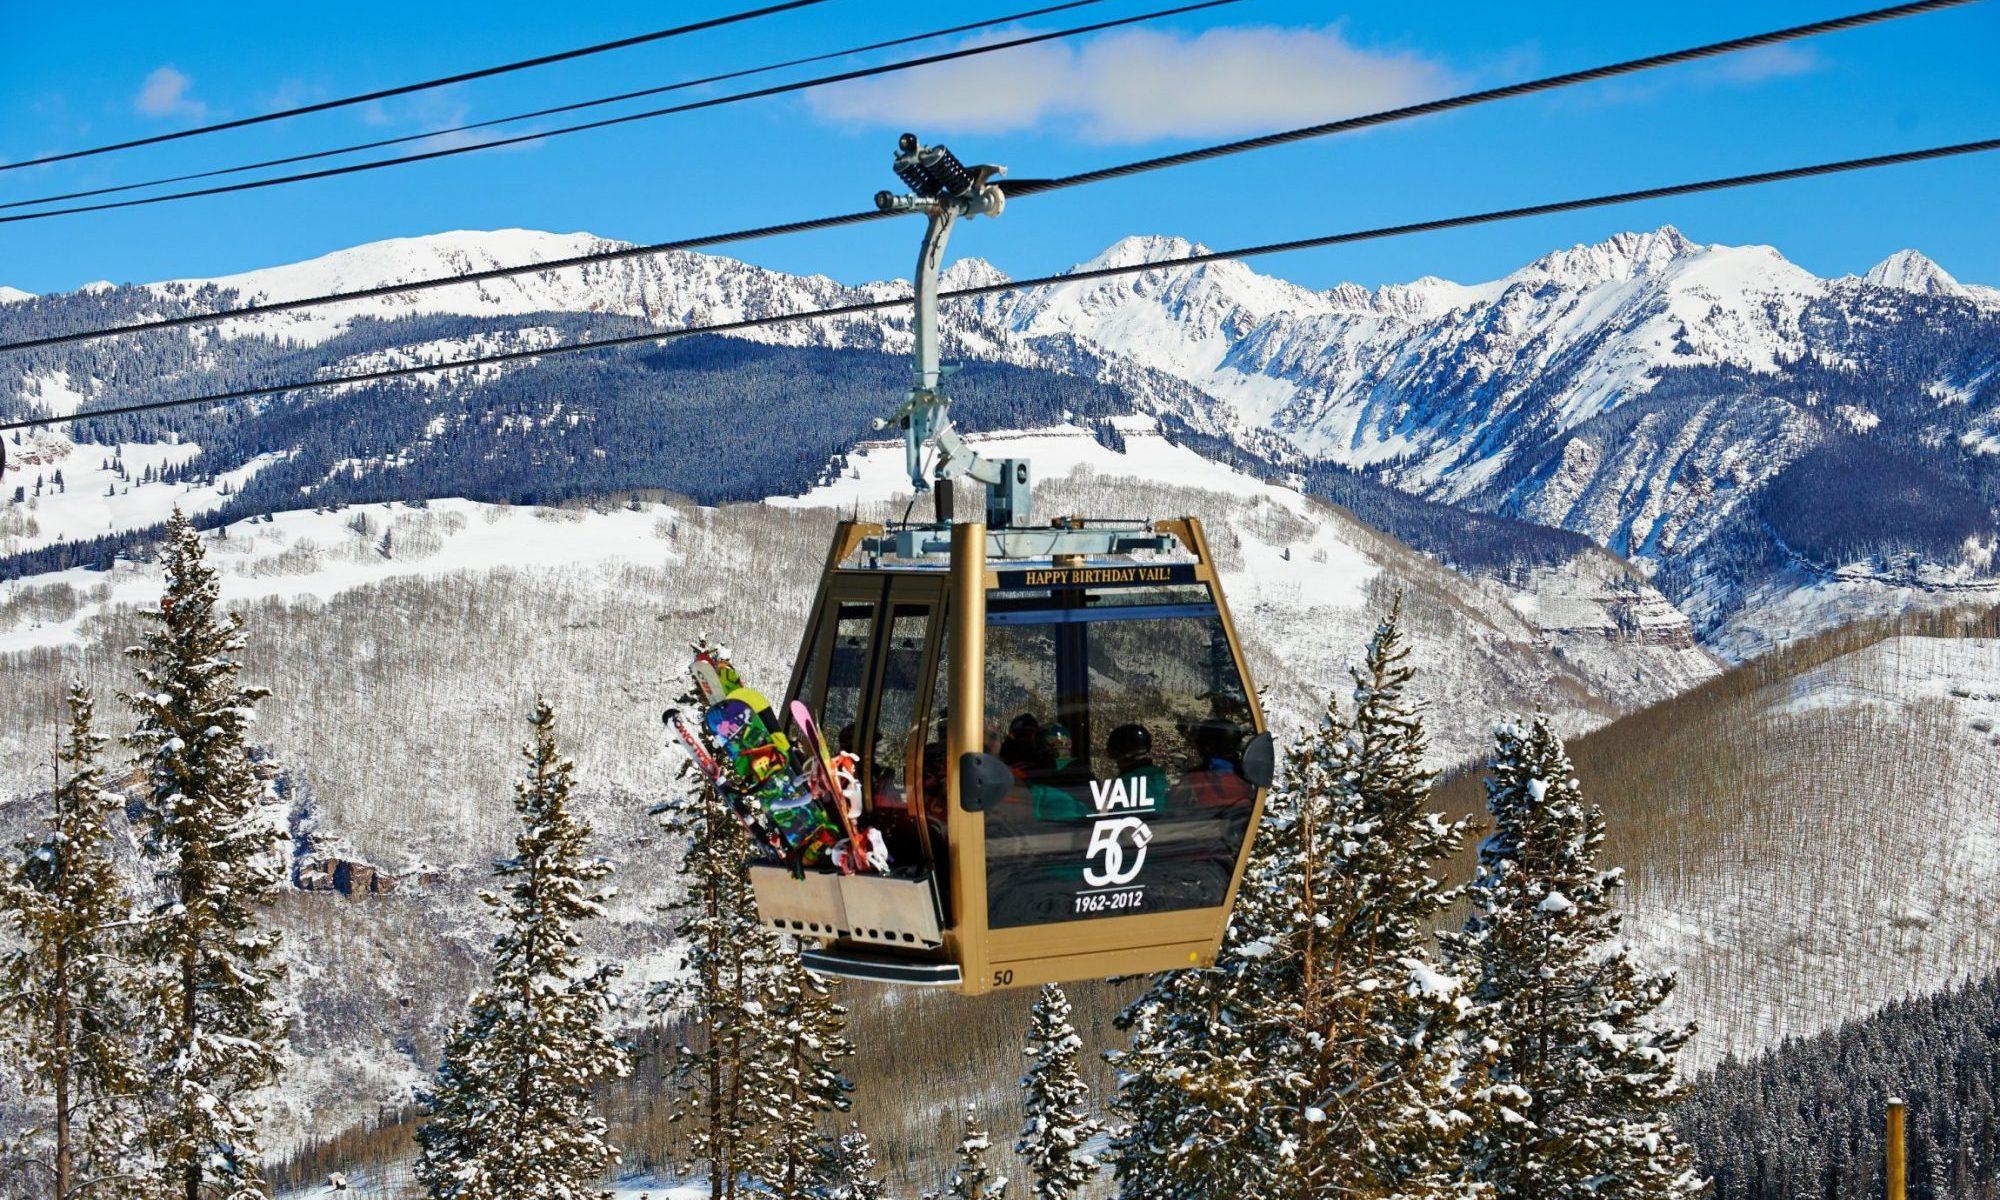 Gondola One - Gold Cabin - photo by Jack Affleck - Vail Mountain. Emma, the World's First Digital Mountain Assistant, Kicks Off the 2018-19 Winter Season in Beta at Keystone Ski Resort